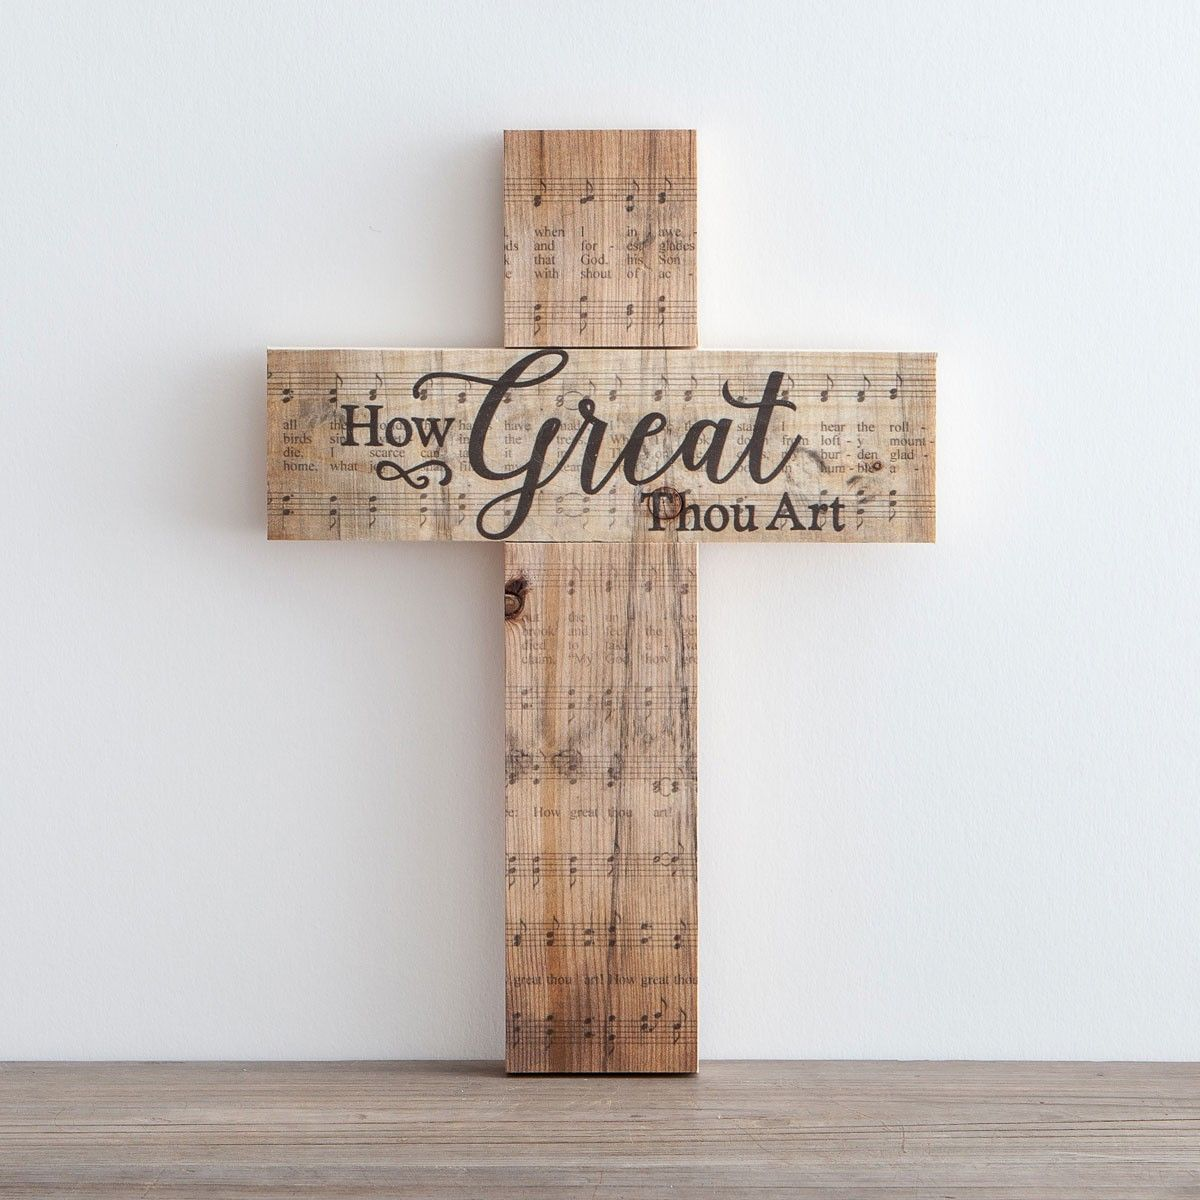 How great thou art wooden cross for the home pinterest how great thou art wooden cross amipublicfo Gallery